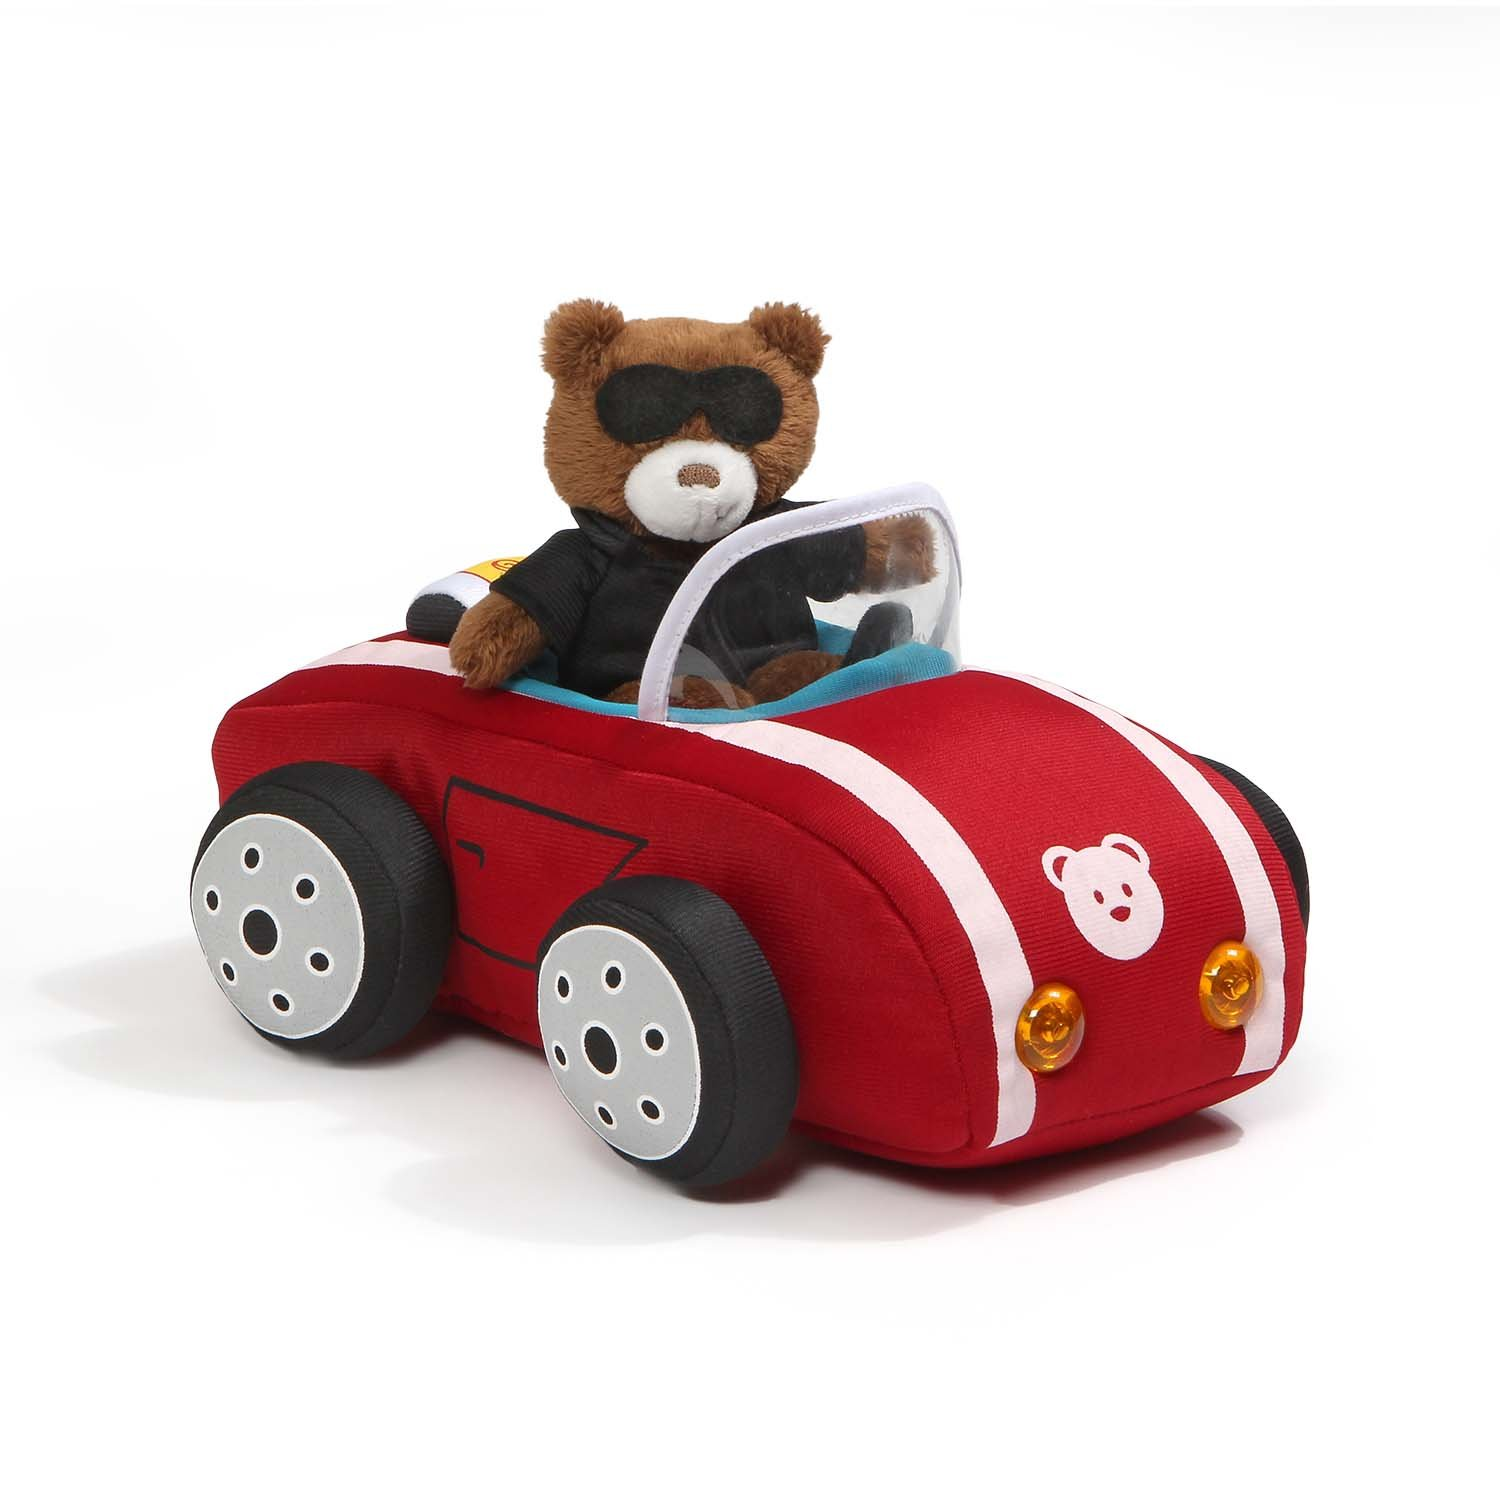 Baby GUND Light and Sounds Sports Car with Teddy Bear Stuffed Animal Plush, 9.5''